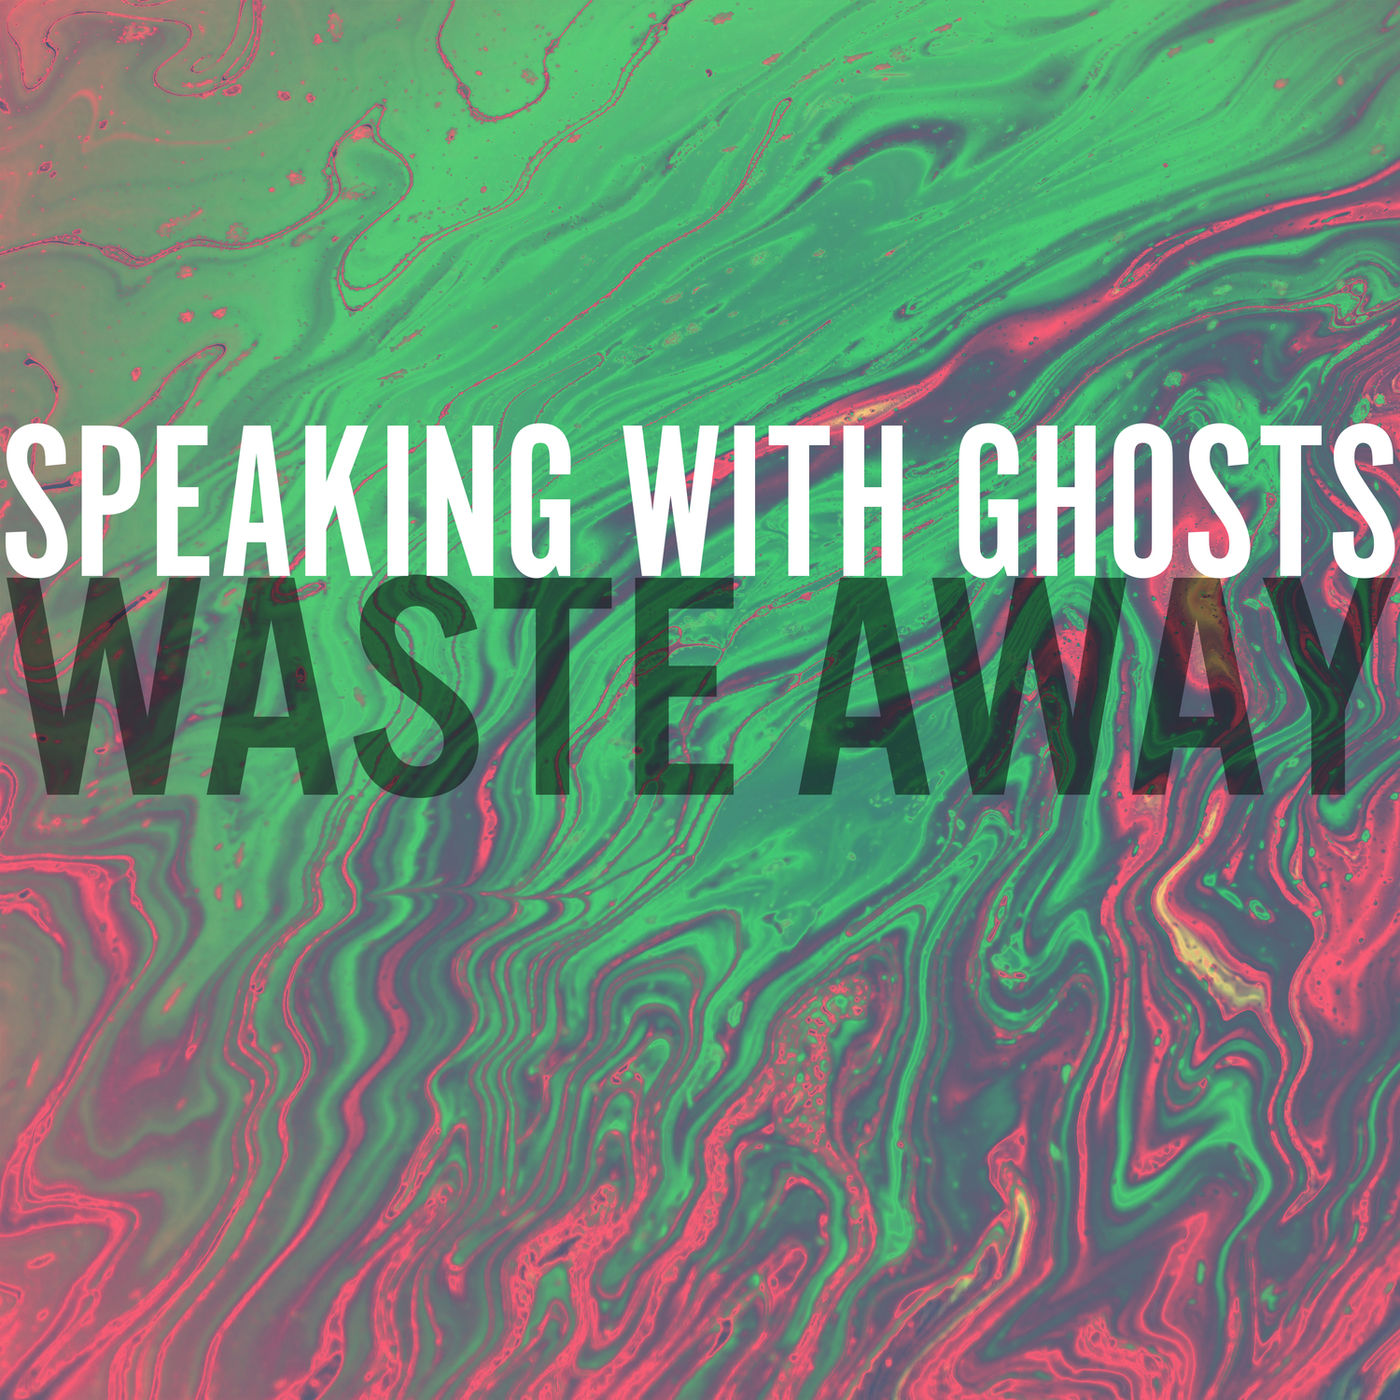 Speaking With Ghosts - Waste Away [single] (2020)